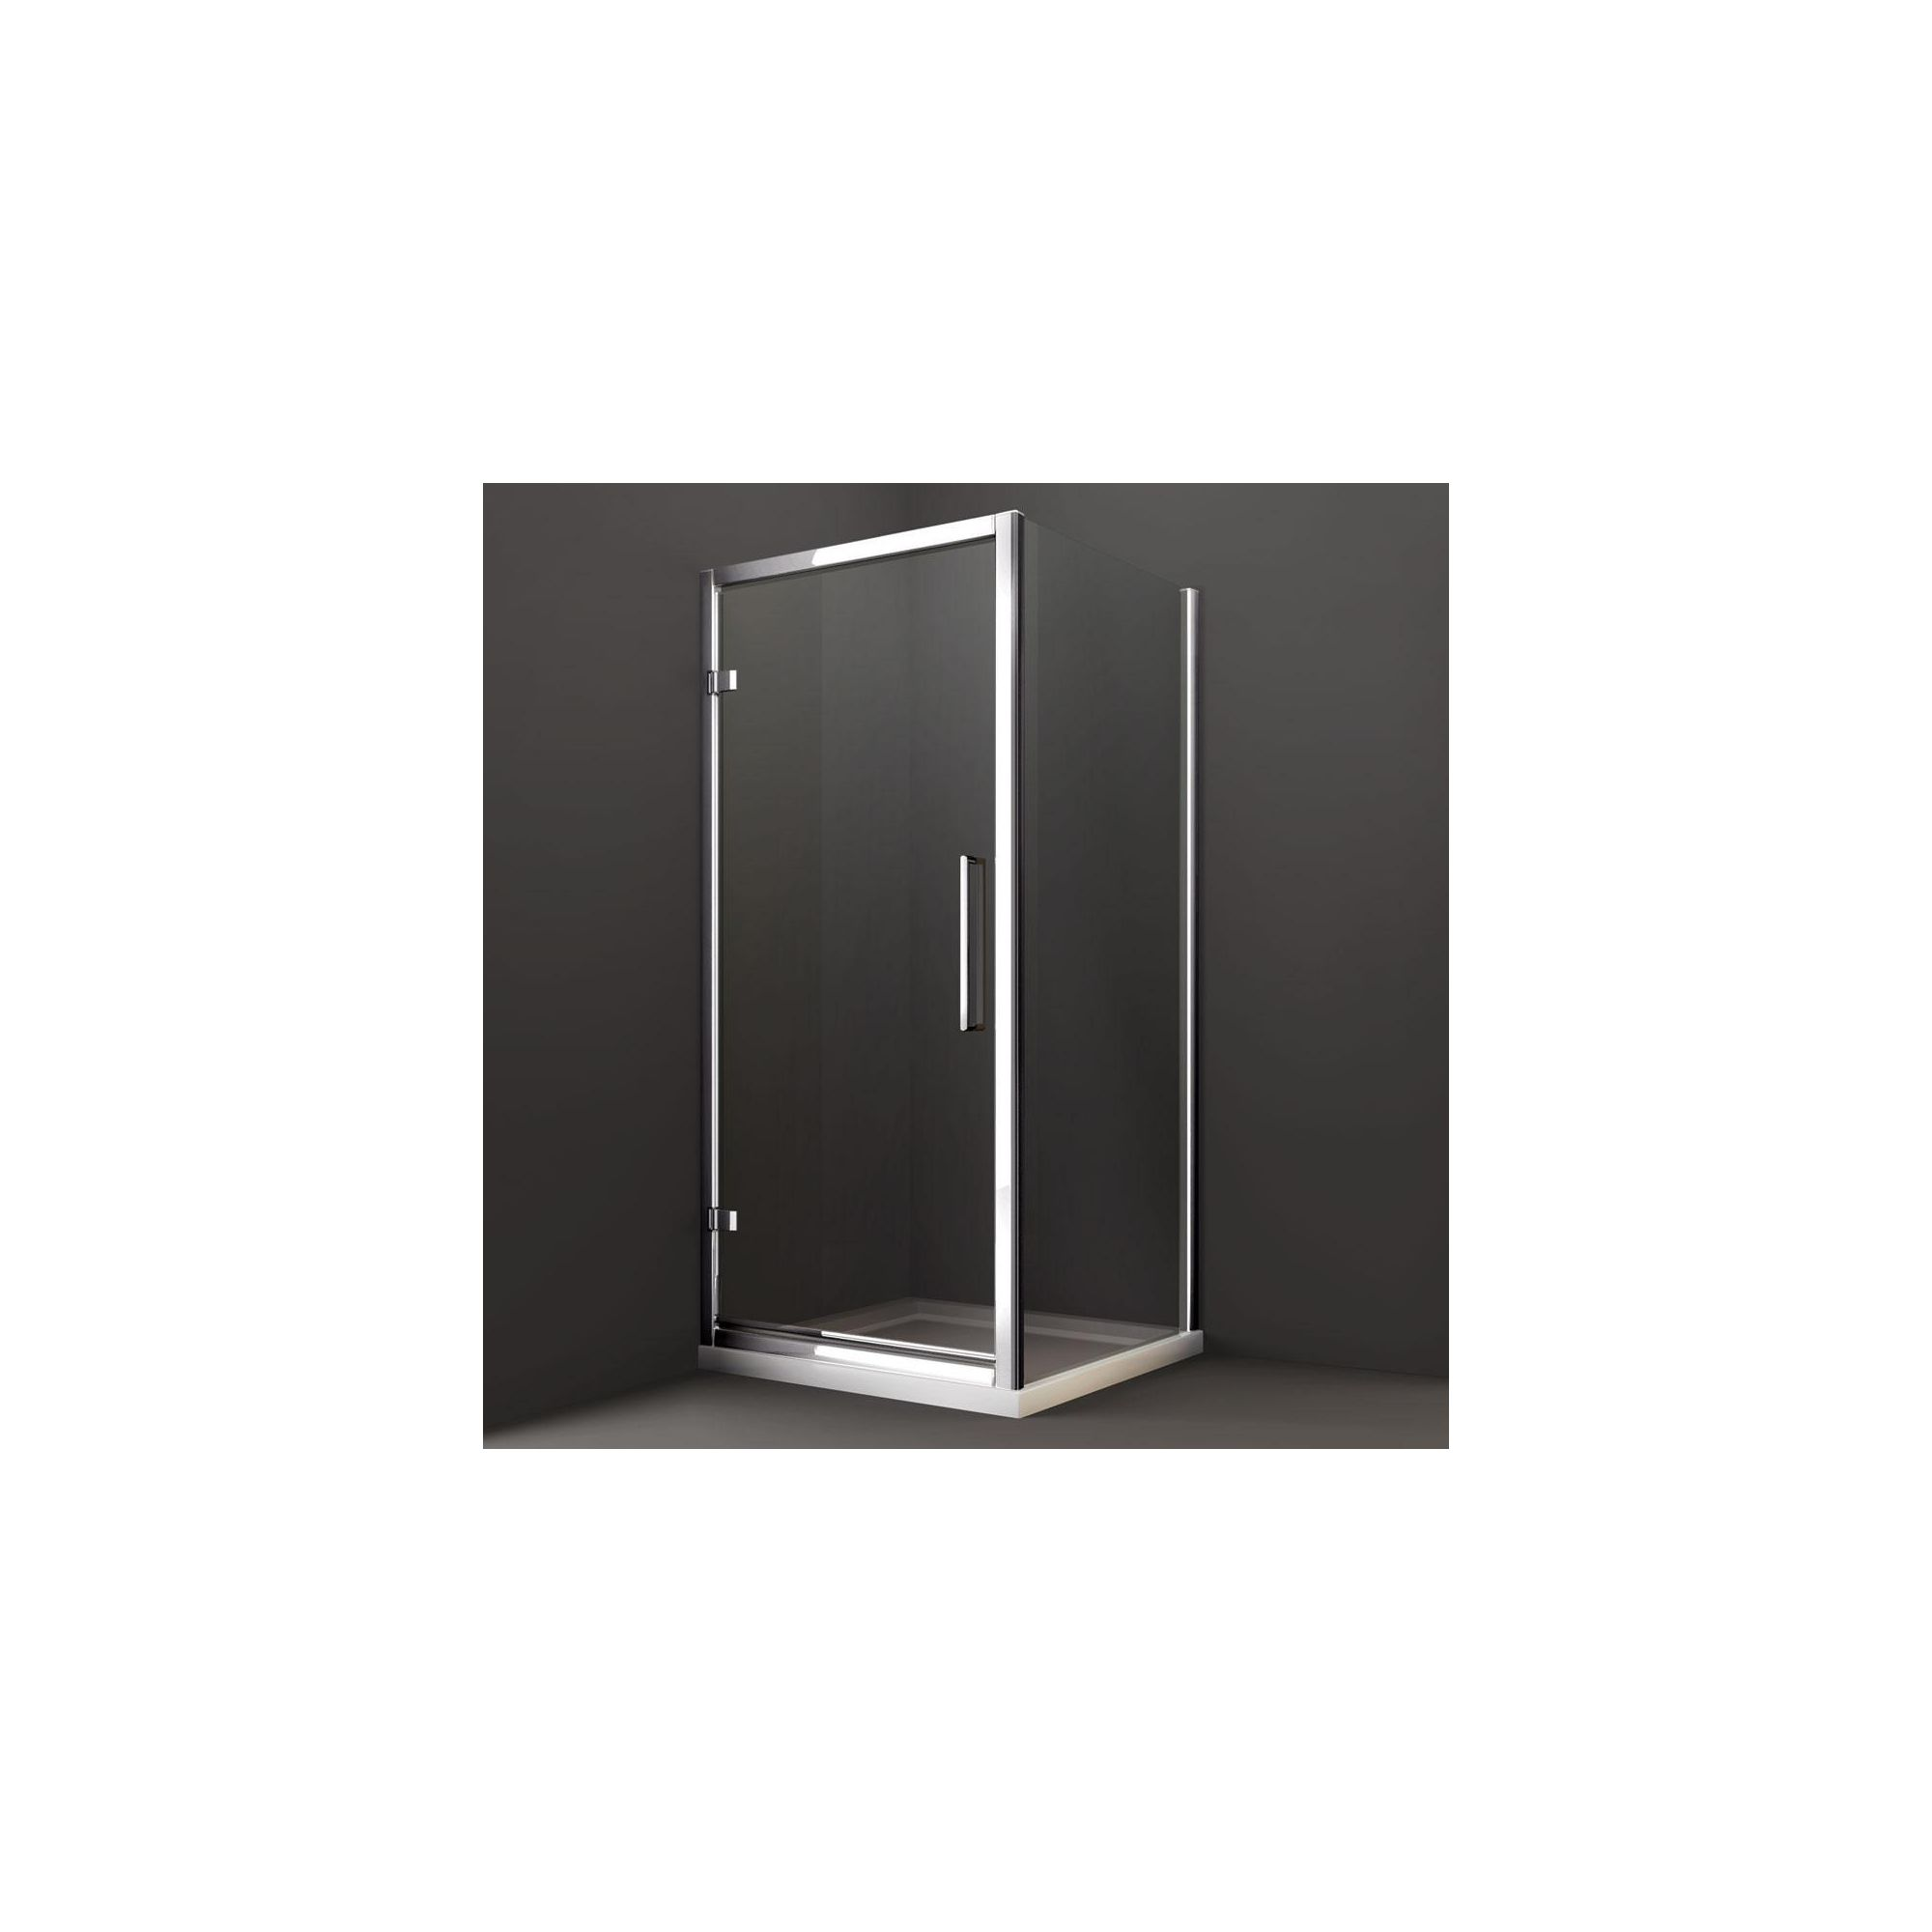 Merlyn Series 8 Hinged Shower Door, 800mm Wide, Chrome Frame, 8mm Glass at Tesco Direct